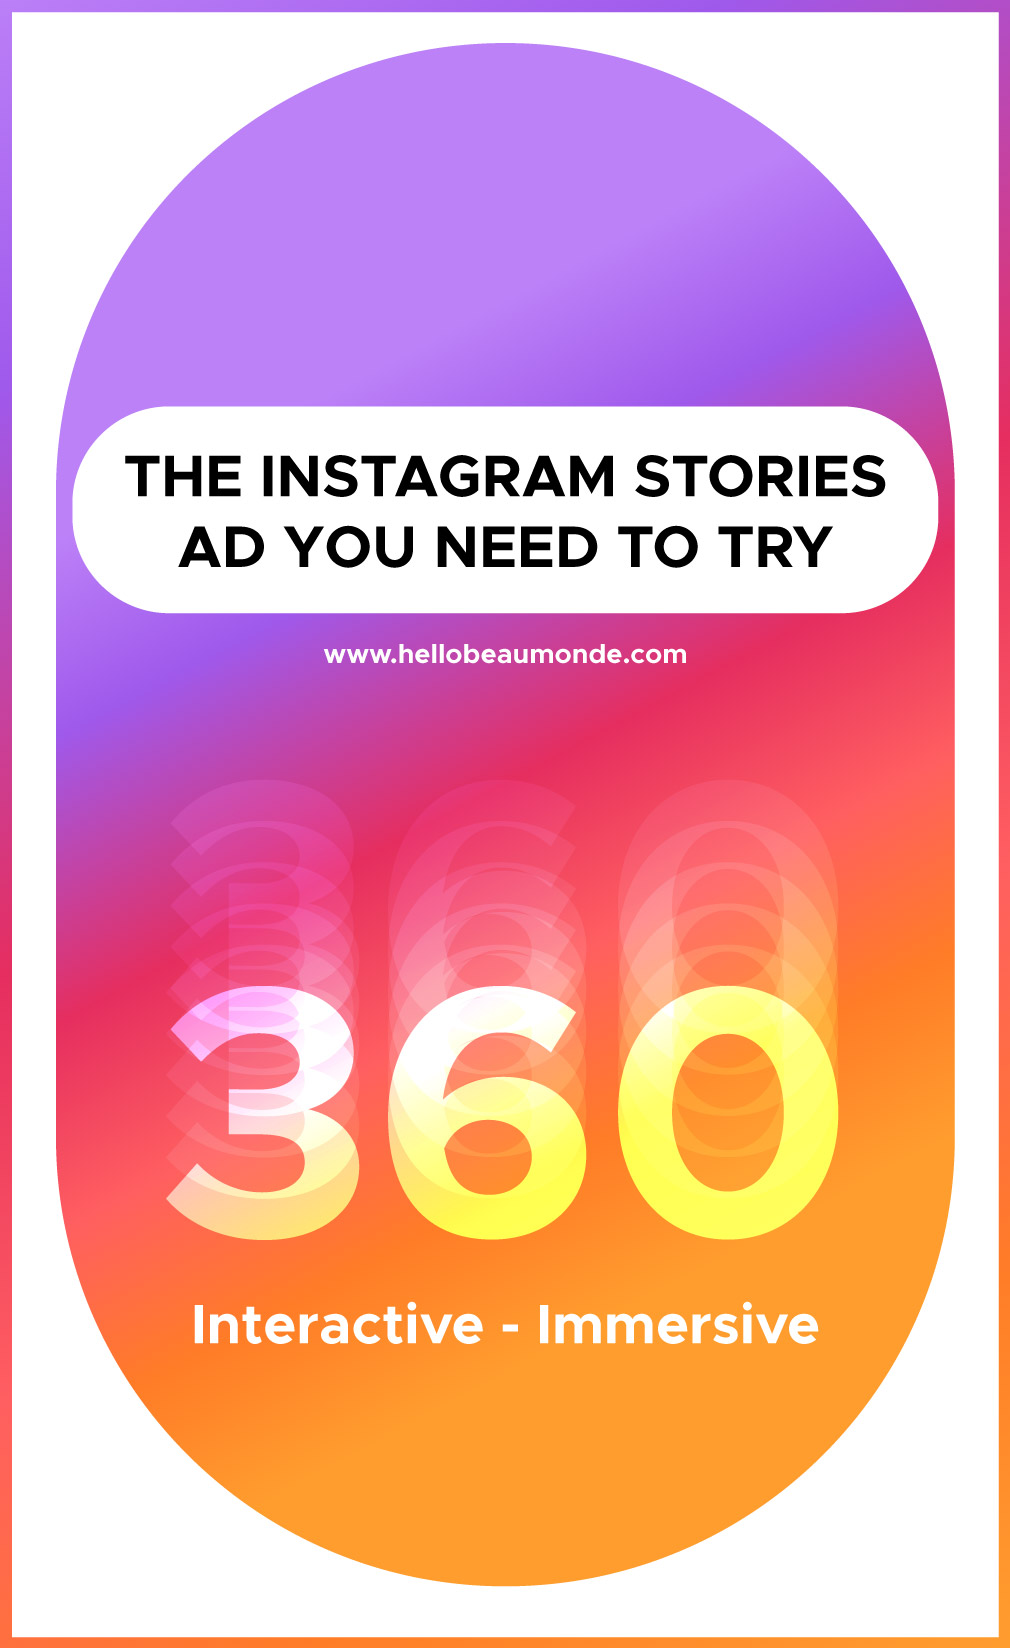 Check out interactive Instagram Stories ads to immerse your audience like never before.